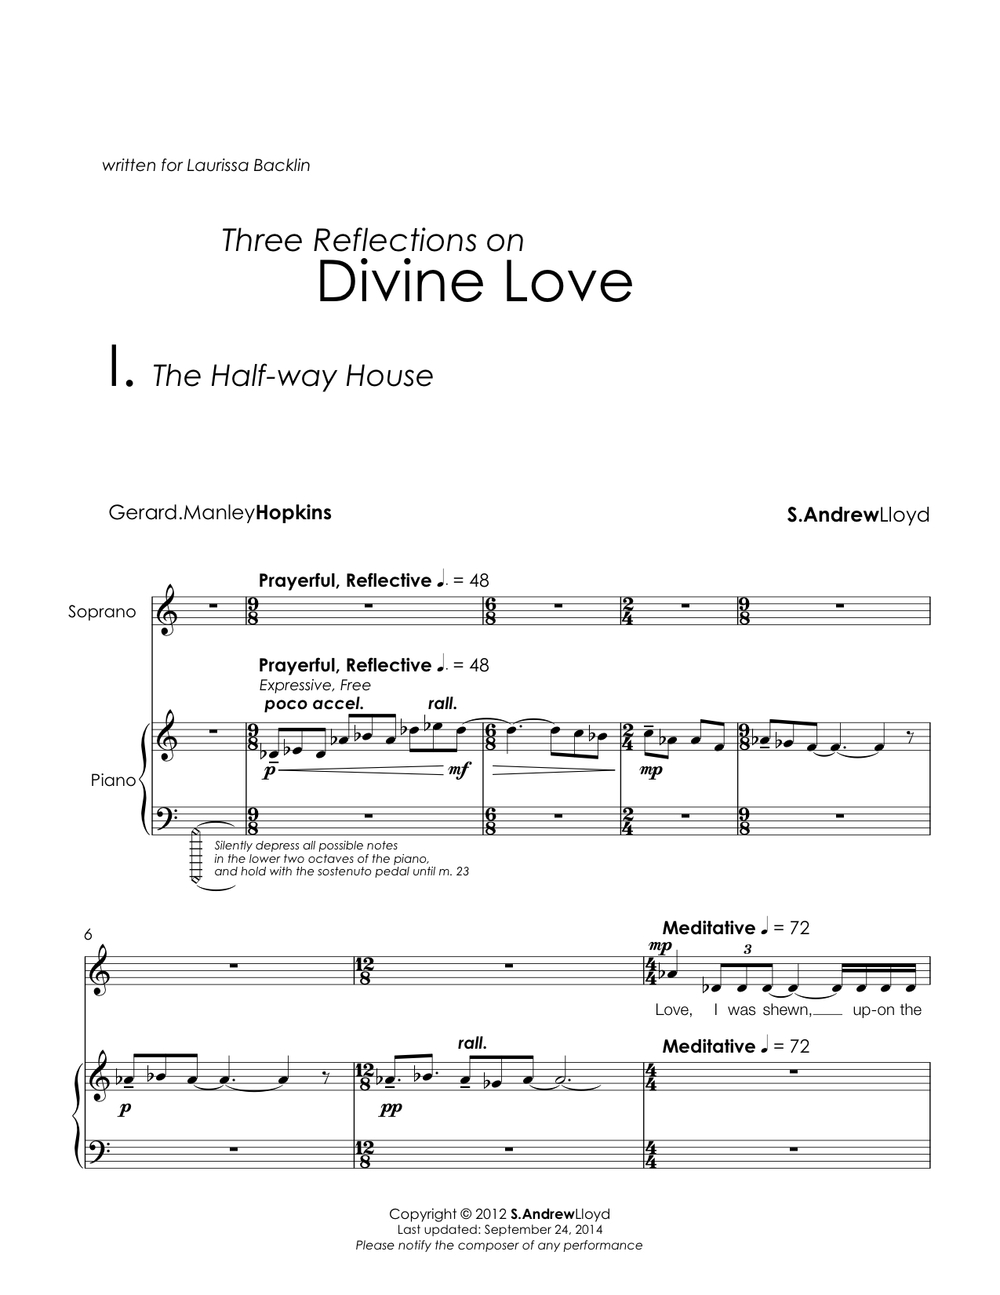 Three Reflections on Divine Love Sample 1.jpg